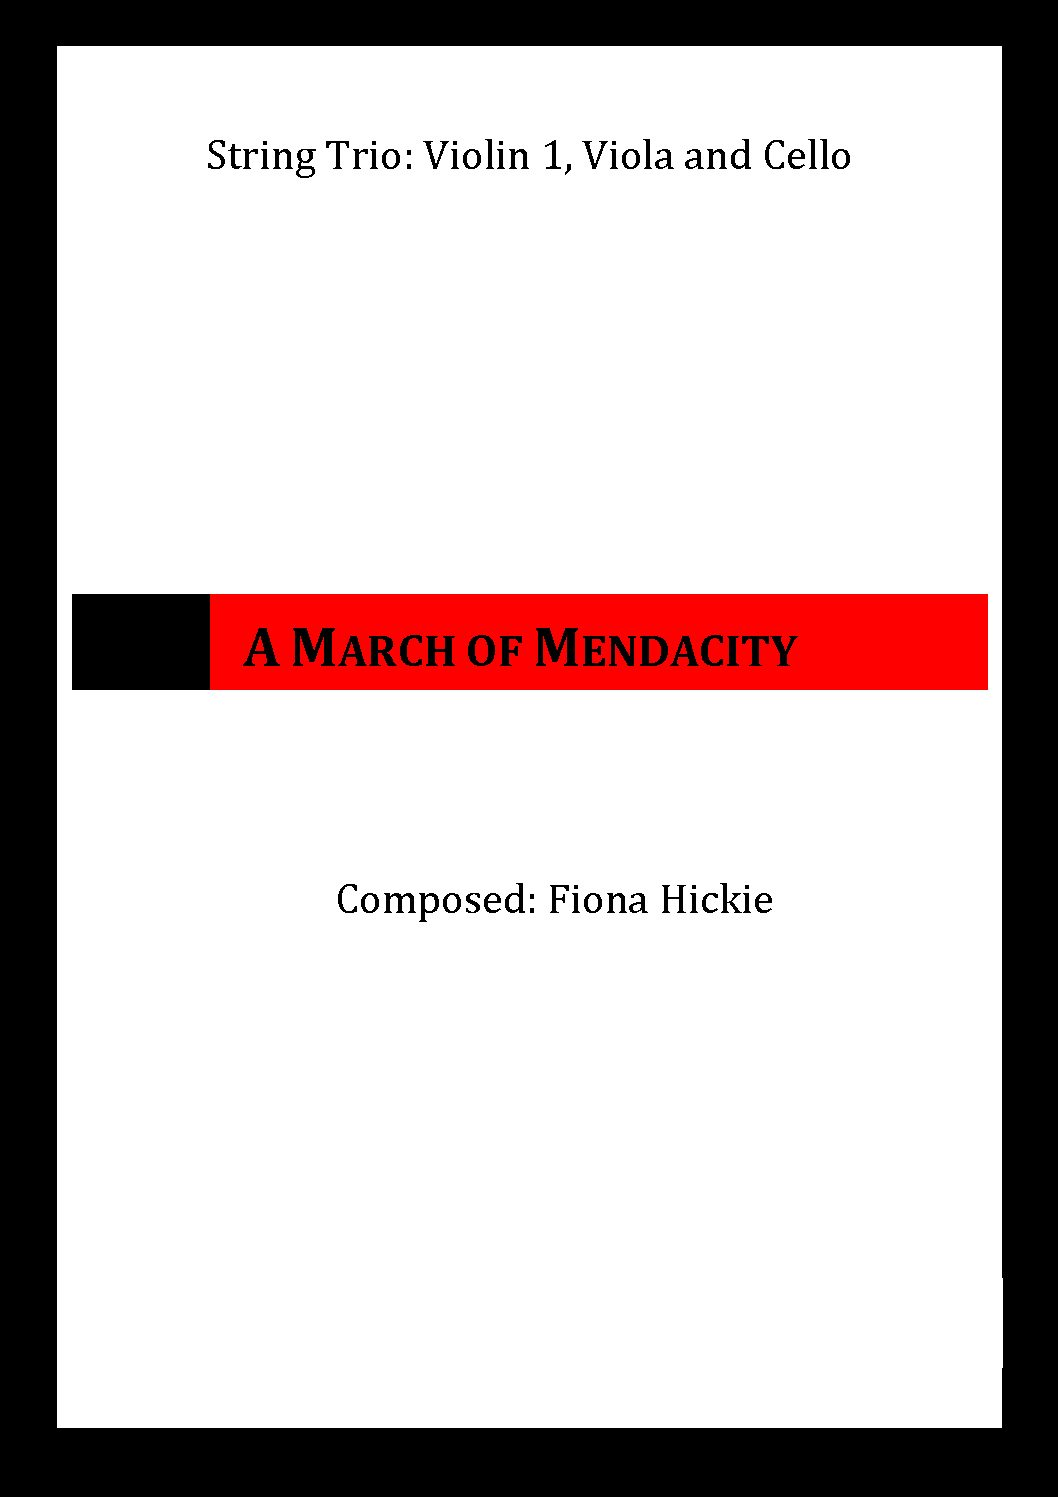 cover.docx mendacity strings pdf